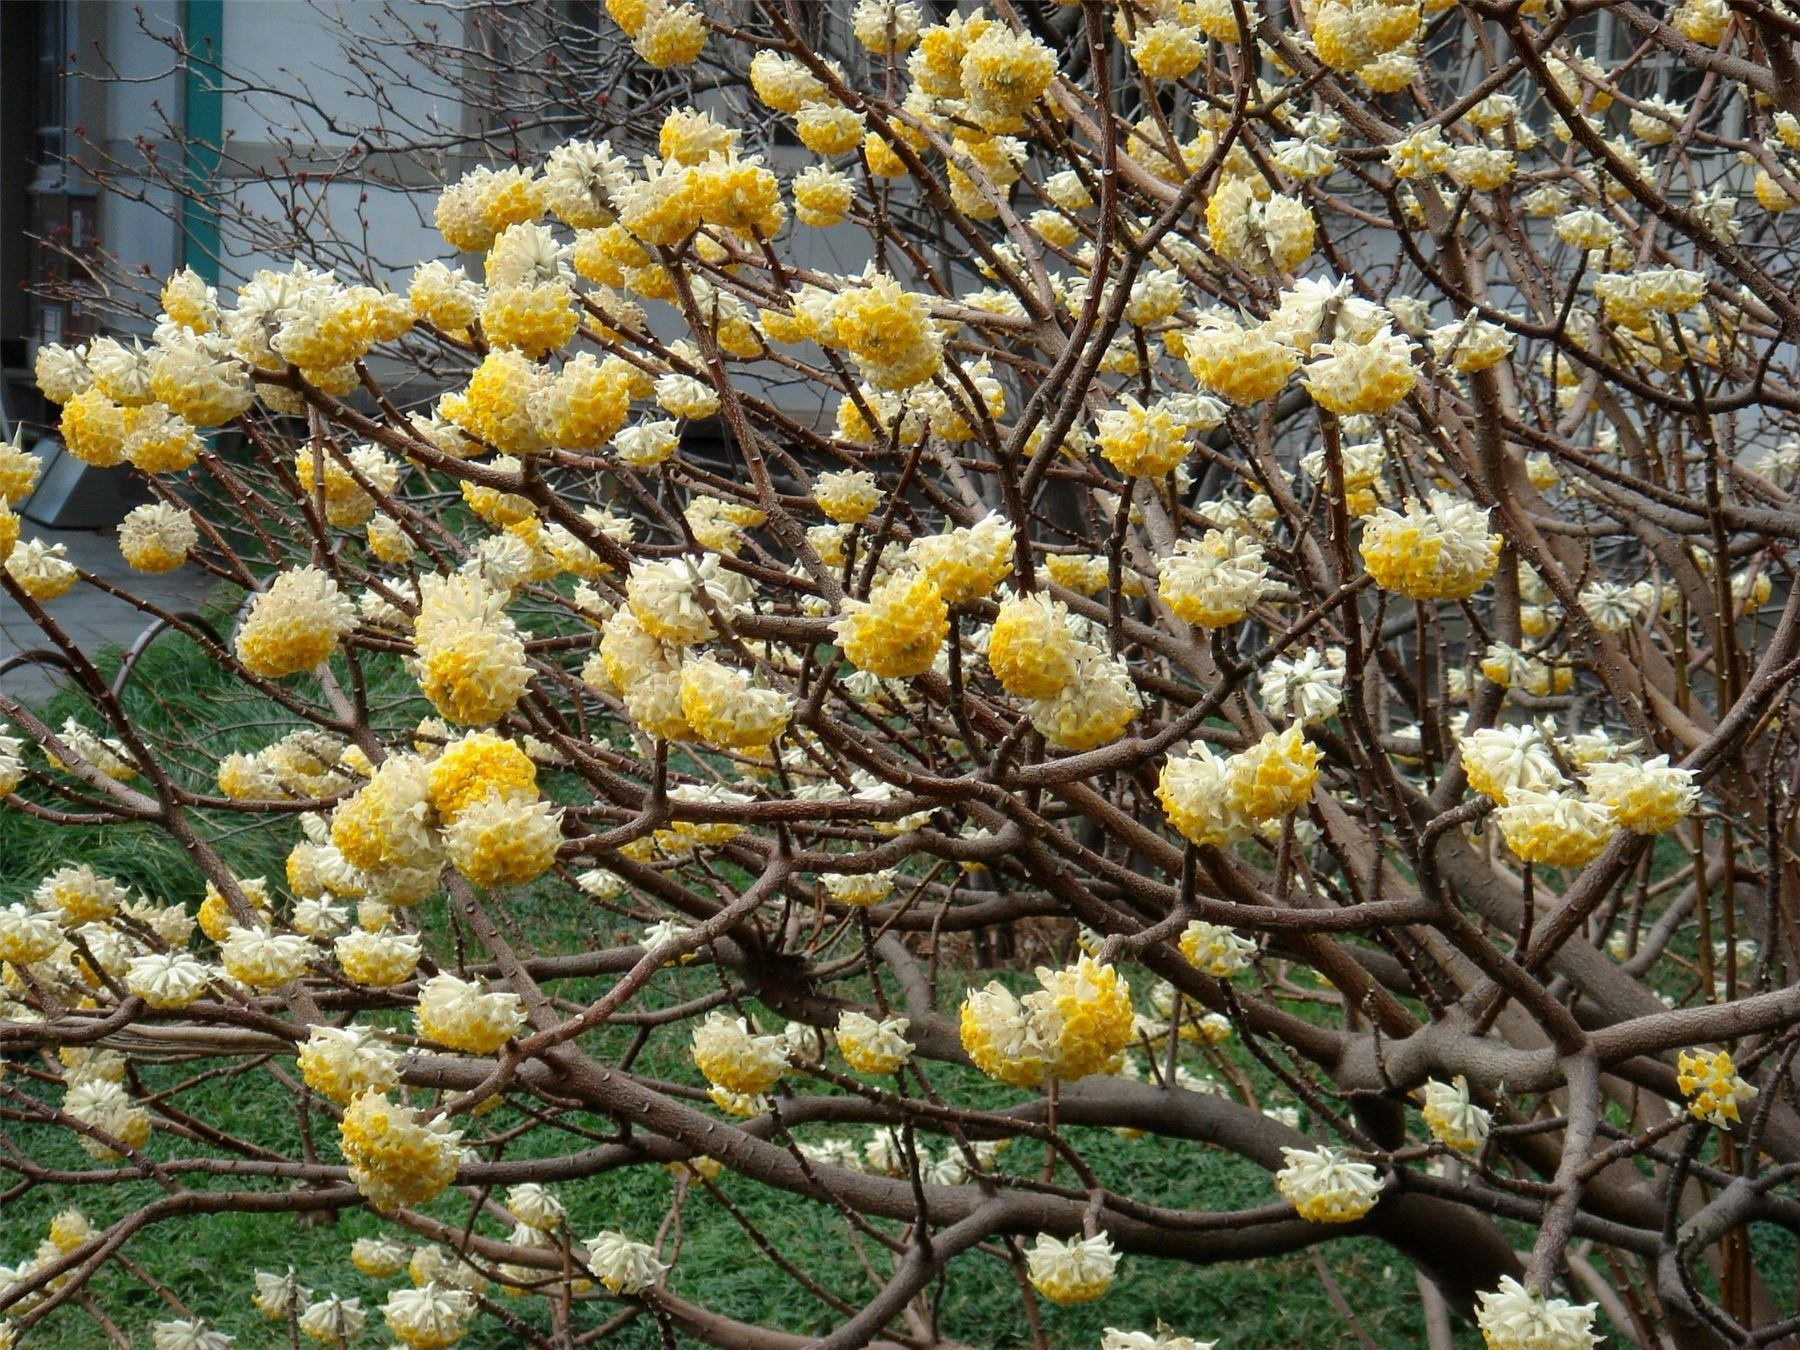 The flowers of the Mitsumata in full bloom